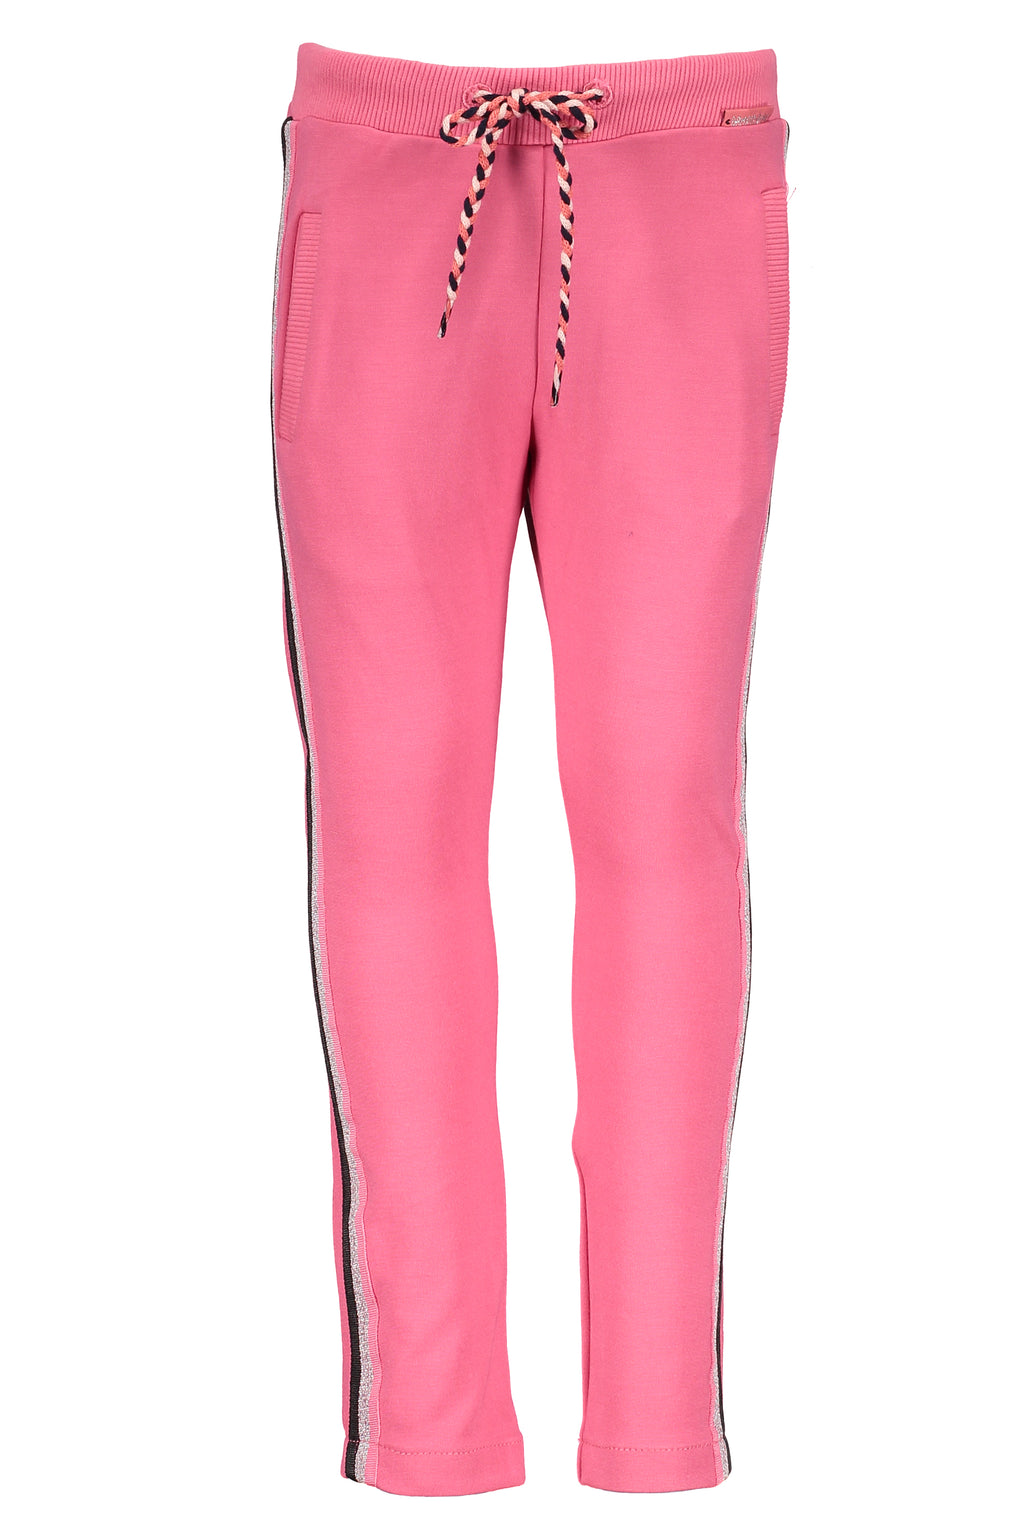 Bampidano : Roze joggingbroek Broek Outlet Kamélie.be